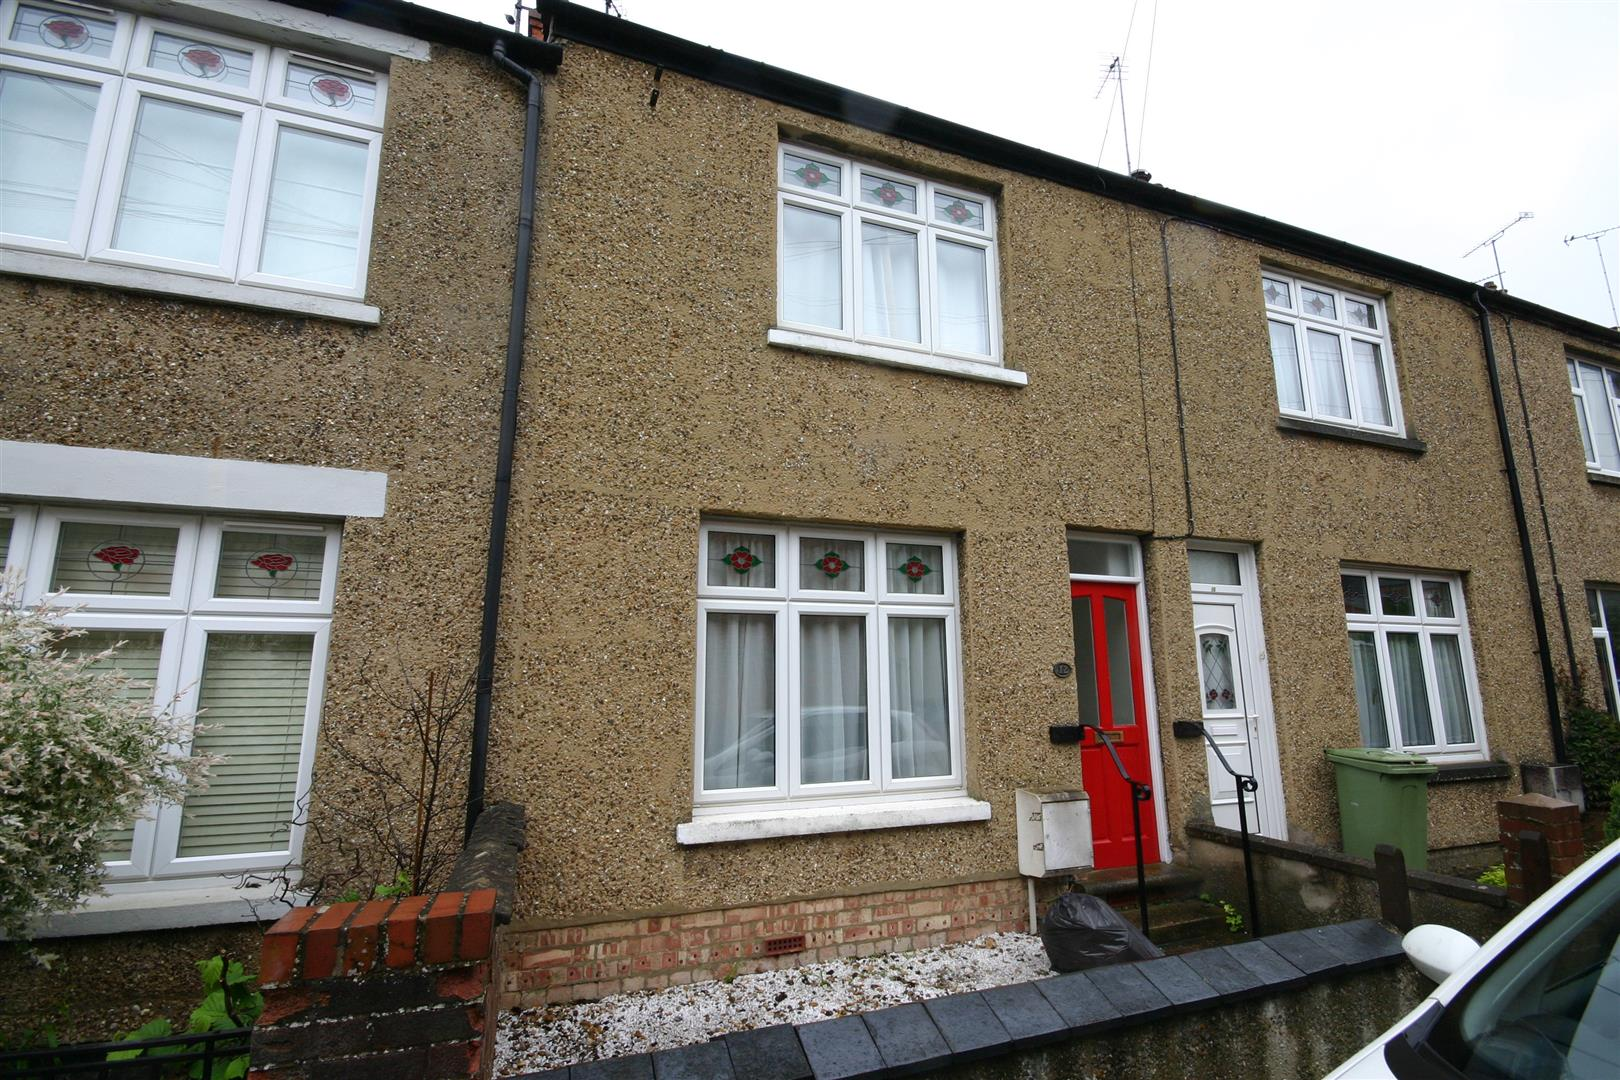 Excellent two bedroom terraced house close to the Stony Stratford Town Centre. The property is well cared for and comprises entrance hall, lounge, separate dining room, kitchen, cloakroom, bedroom 1 with a shower room, bedroom 2 and a bathroom. there is